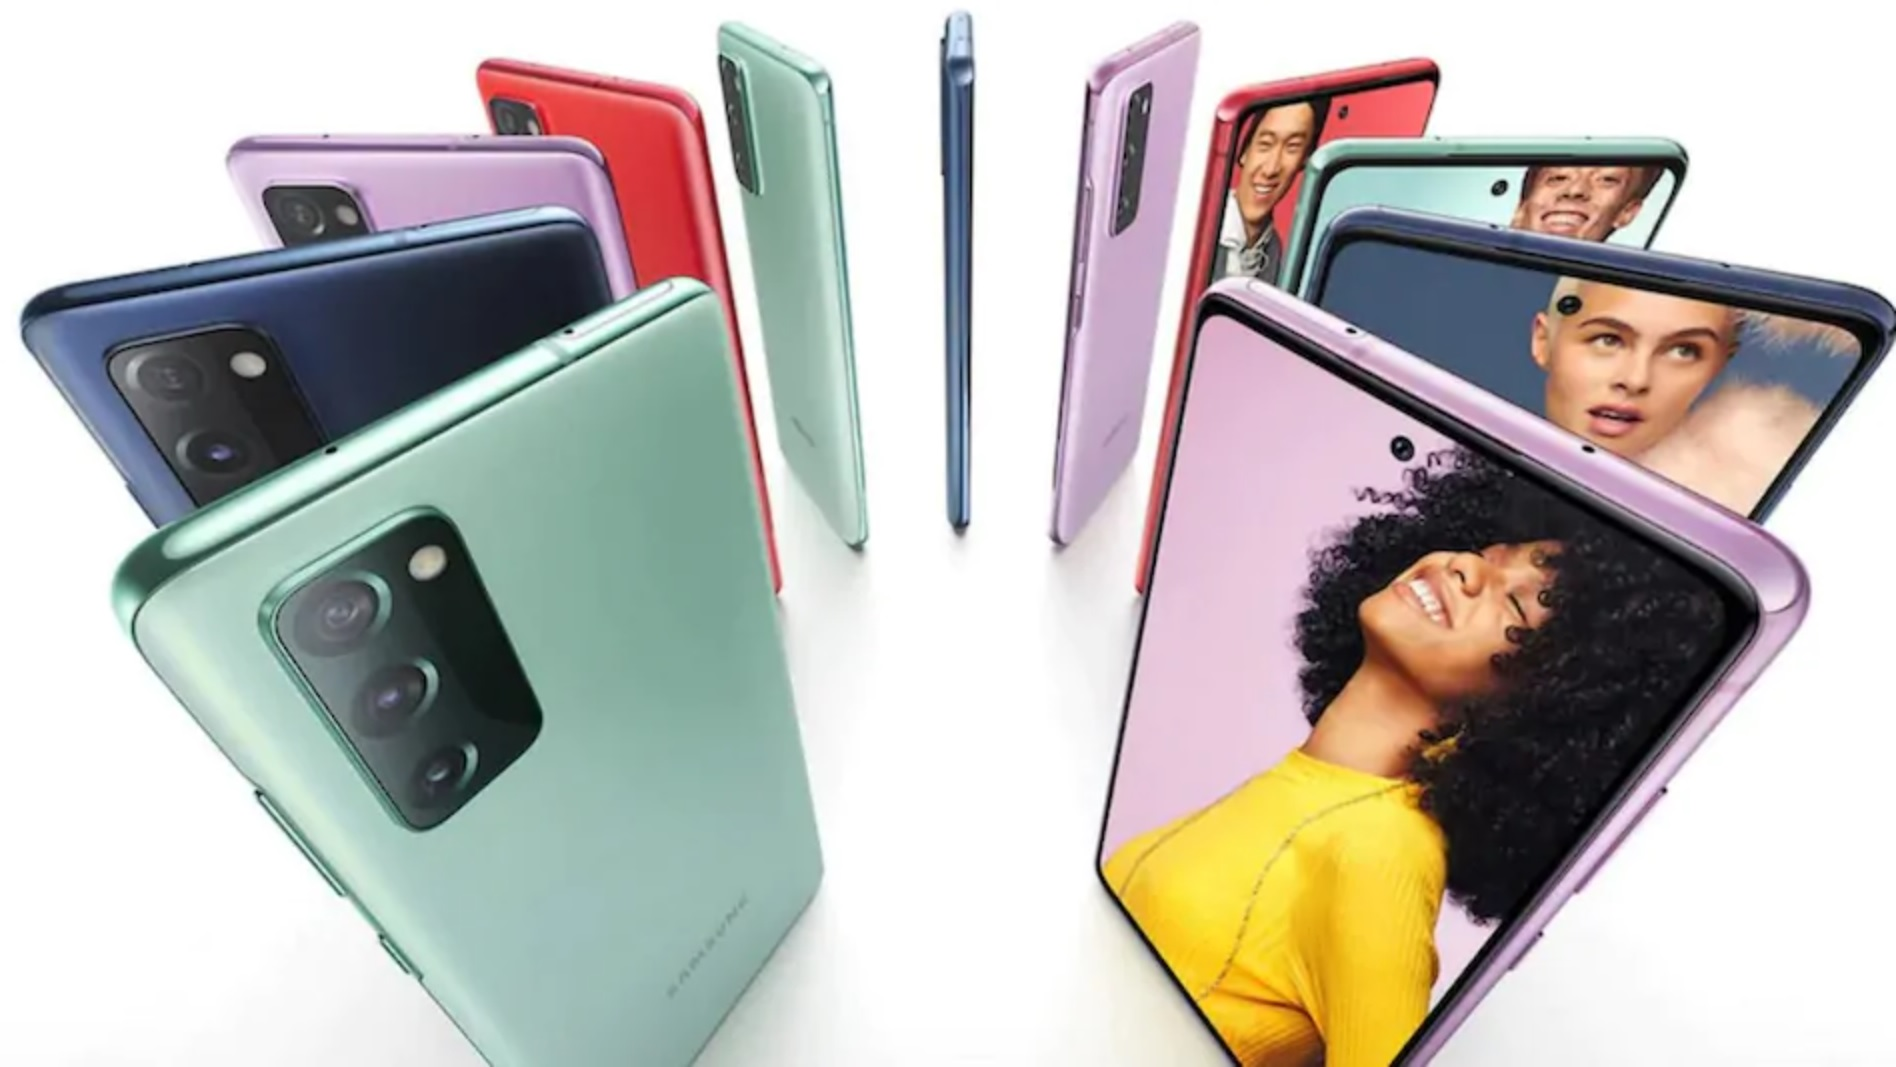 Navy Blue, Mint Green, Lavender Purple, Red and White Samsung Galaxy S20 FE 5G